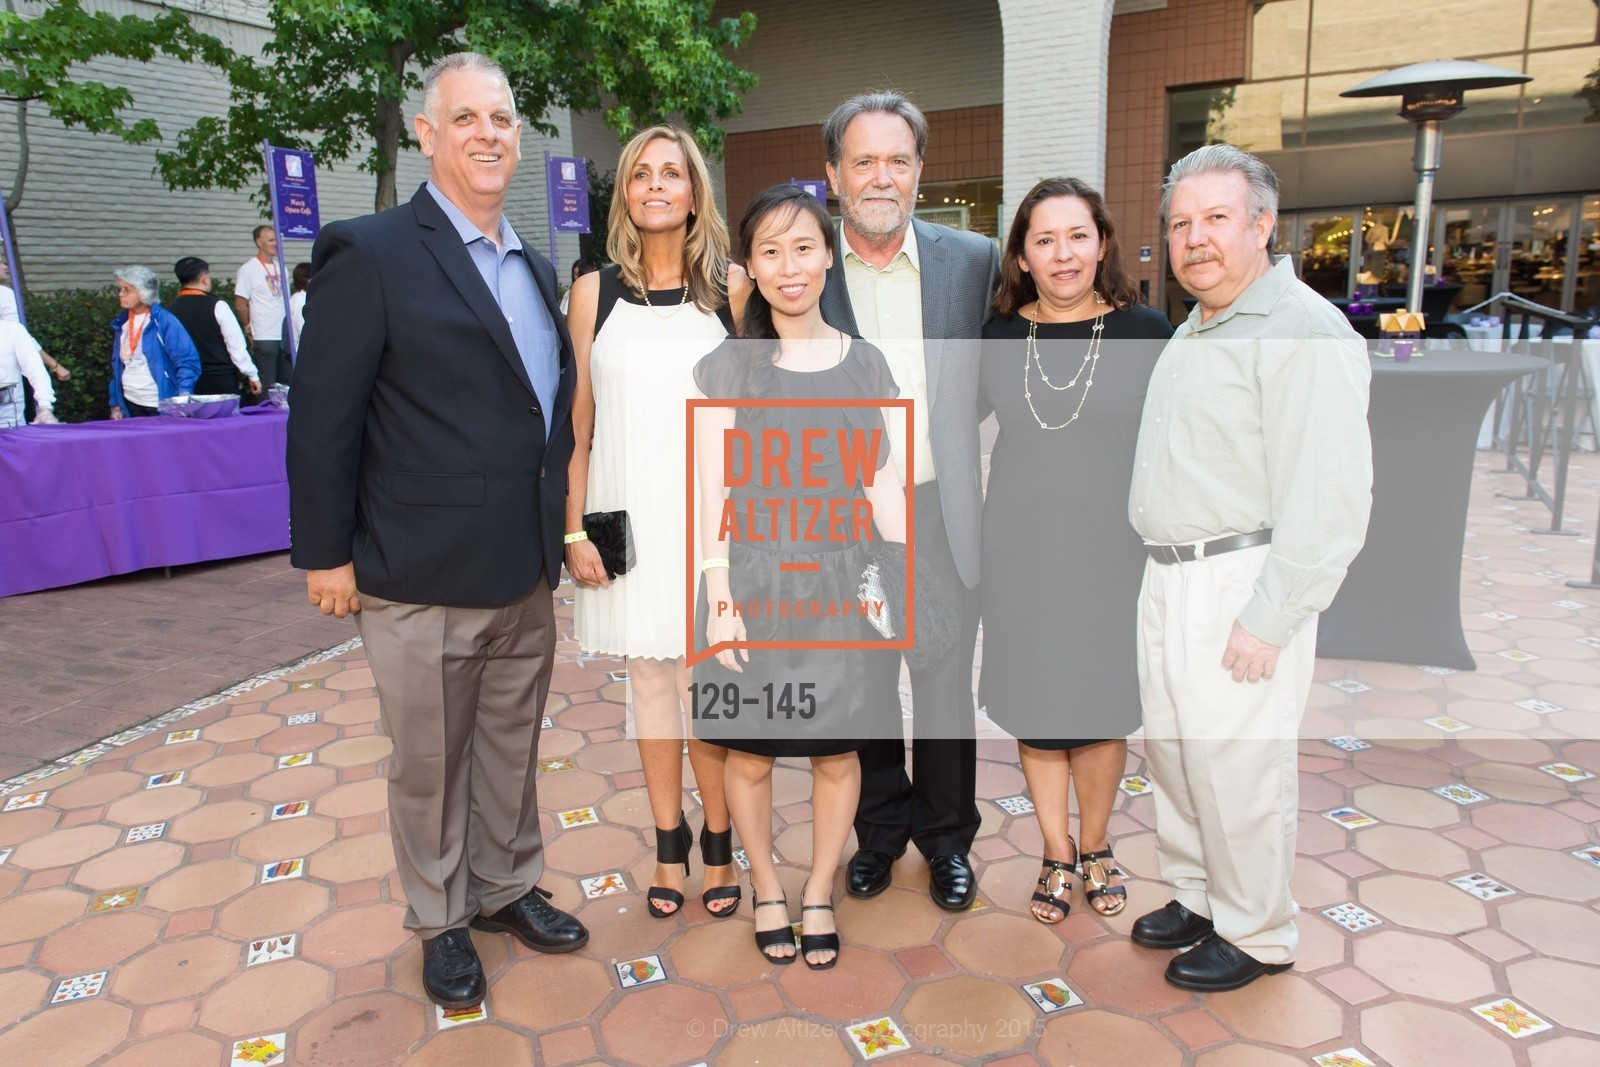 Jerry Karis, Tamara Karis, Maria Ly, Glen Dodds, Teresa Hernandez, Javier Hernandez, DREAMS HAPPEN: Playhouse Auction and Gala, Stanford Shopping Center, June 5th, 2015,Drew Altizer, Drew Altizer Photography, full-service agency, private events, San Francisco photographer, photographer california